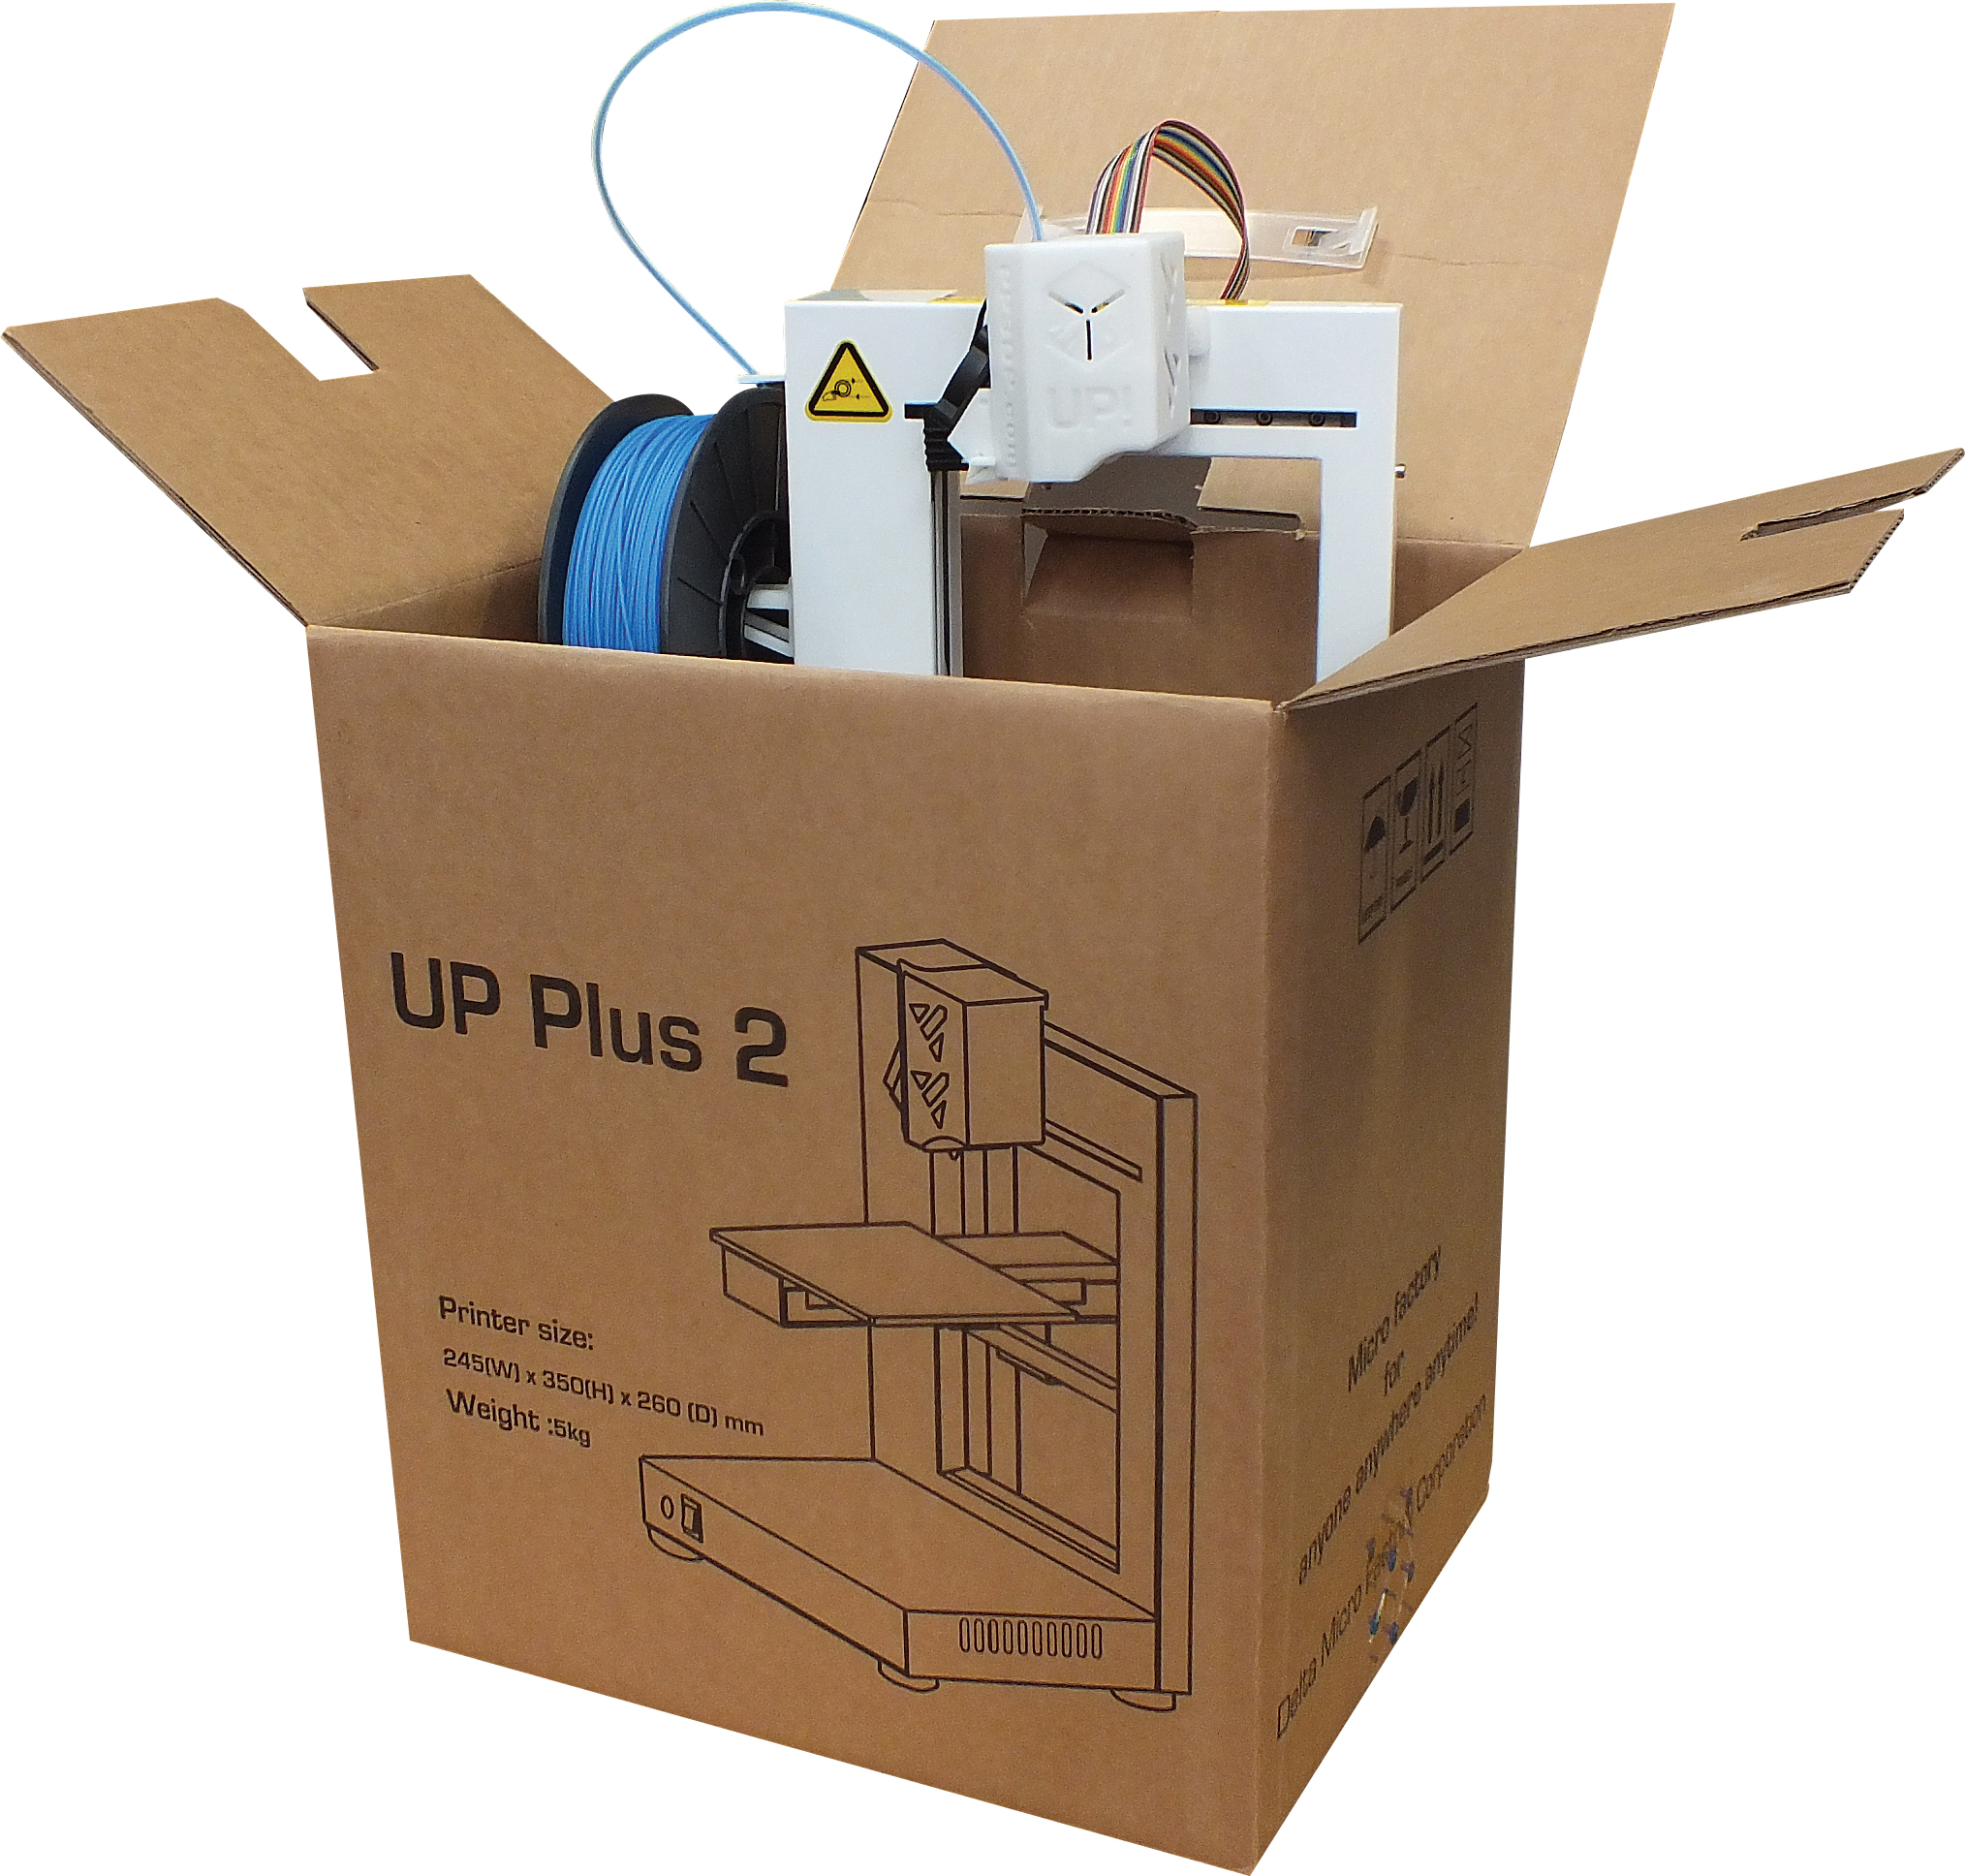 out of the Box the UP Plus 2 3D printer